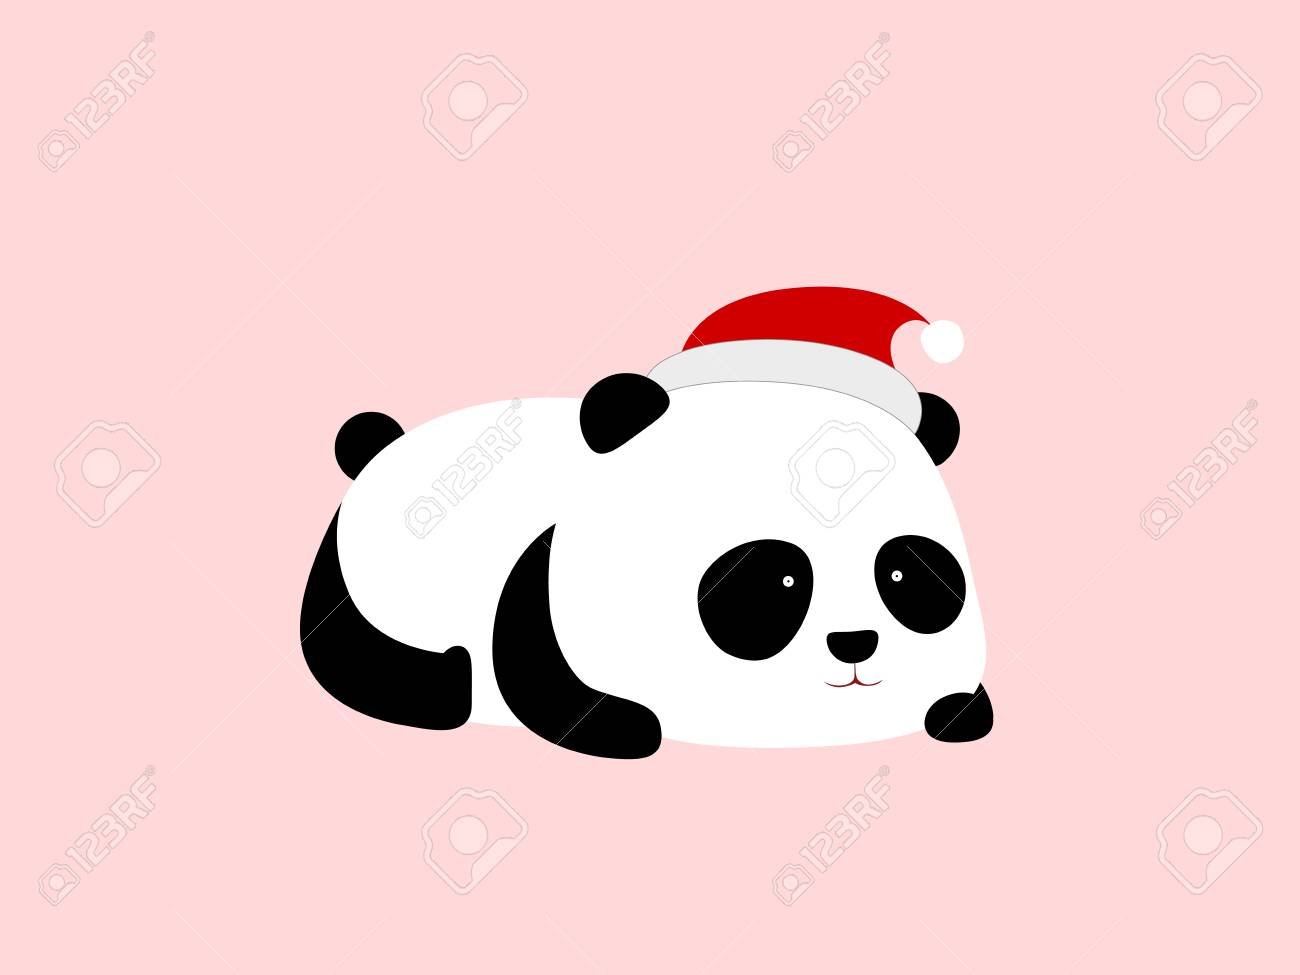 A Cute Cartoon Giant Panda Lies On Its Stomach, With A Christmas.. Royalty  Free Cliparts, Vectors, And Stock Illustration. Image 103511853.